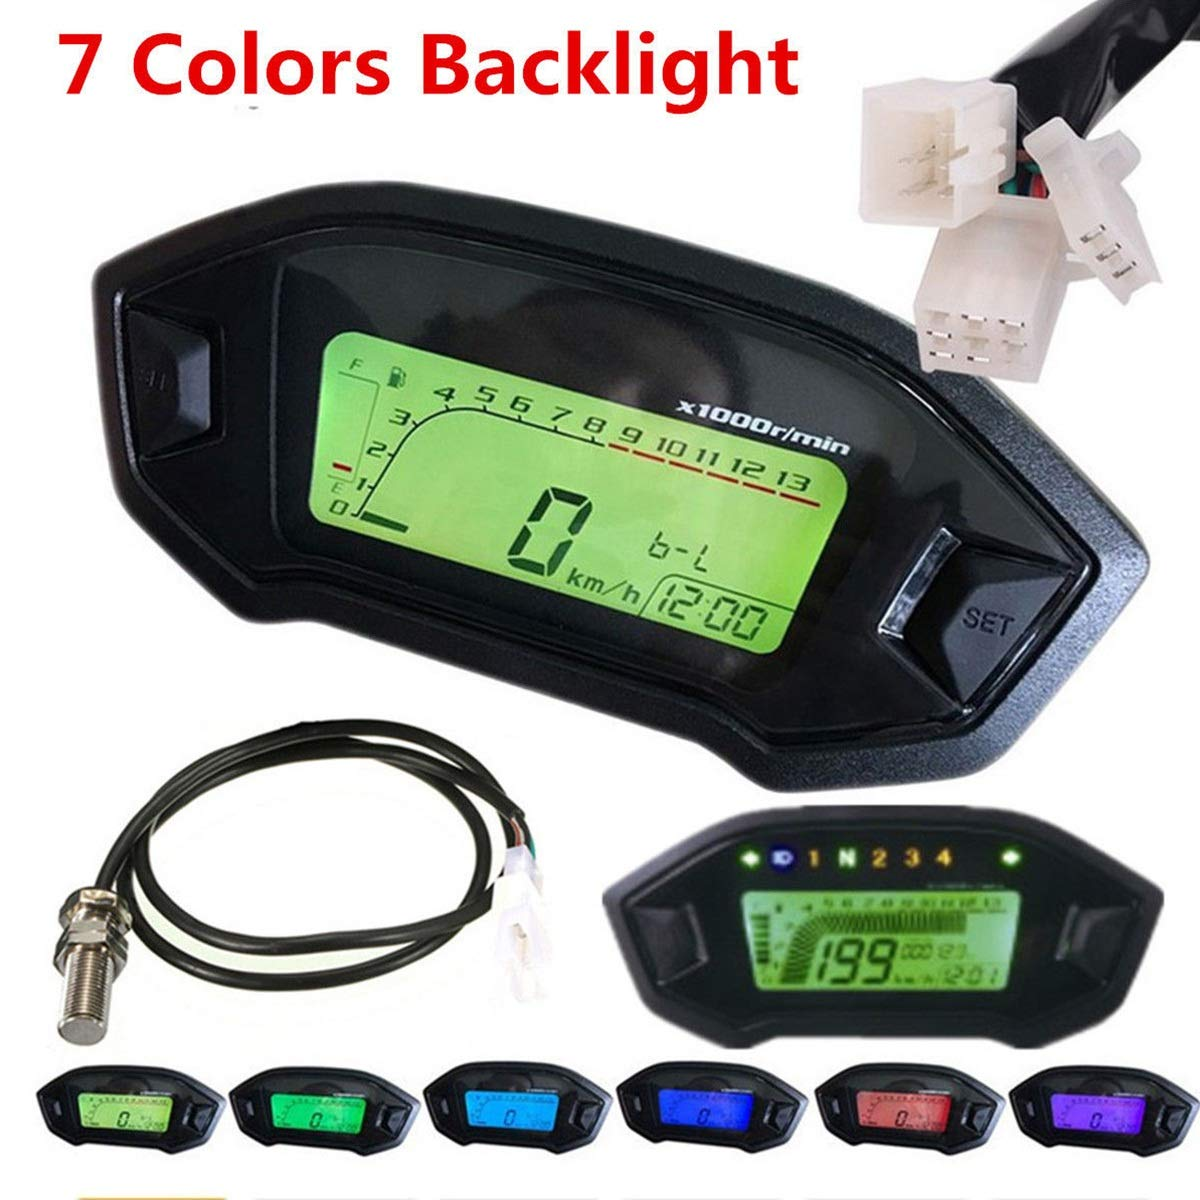 Universal Dc 12v 13000 Rpm 7 Backlight Lcd Motorcycle